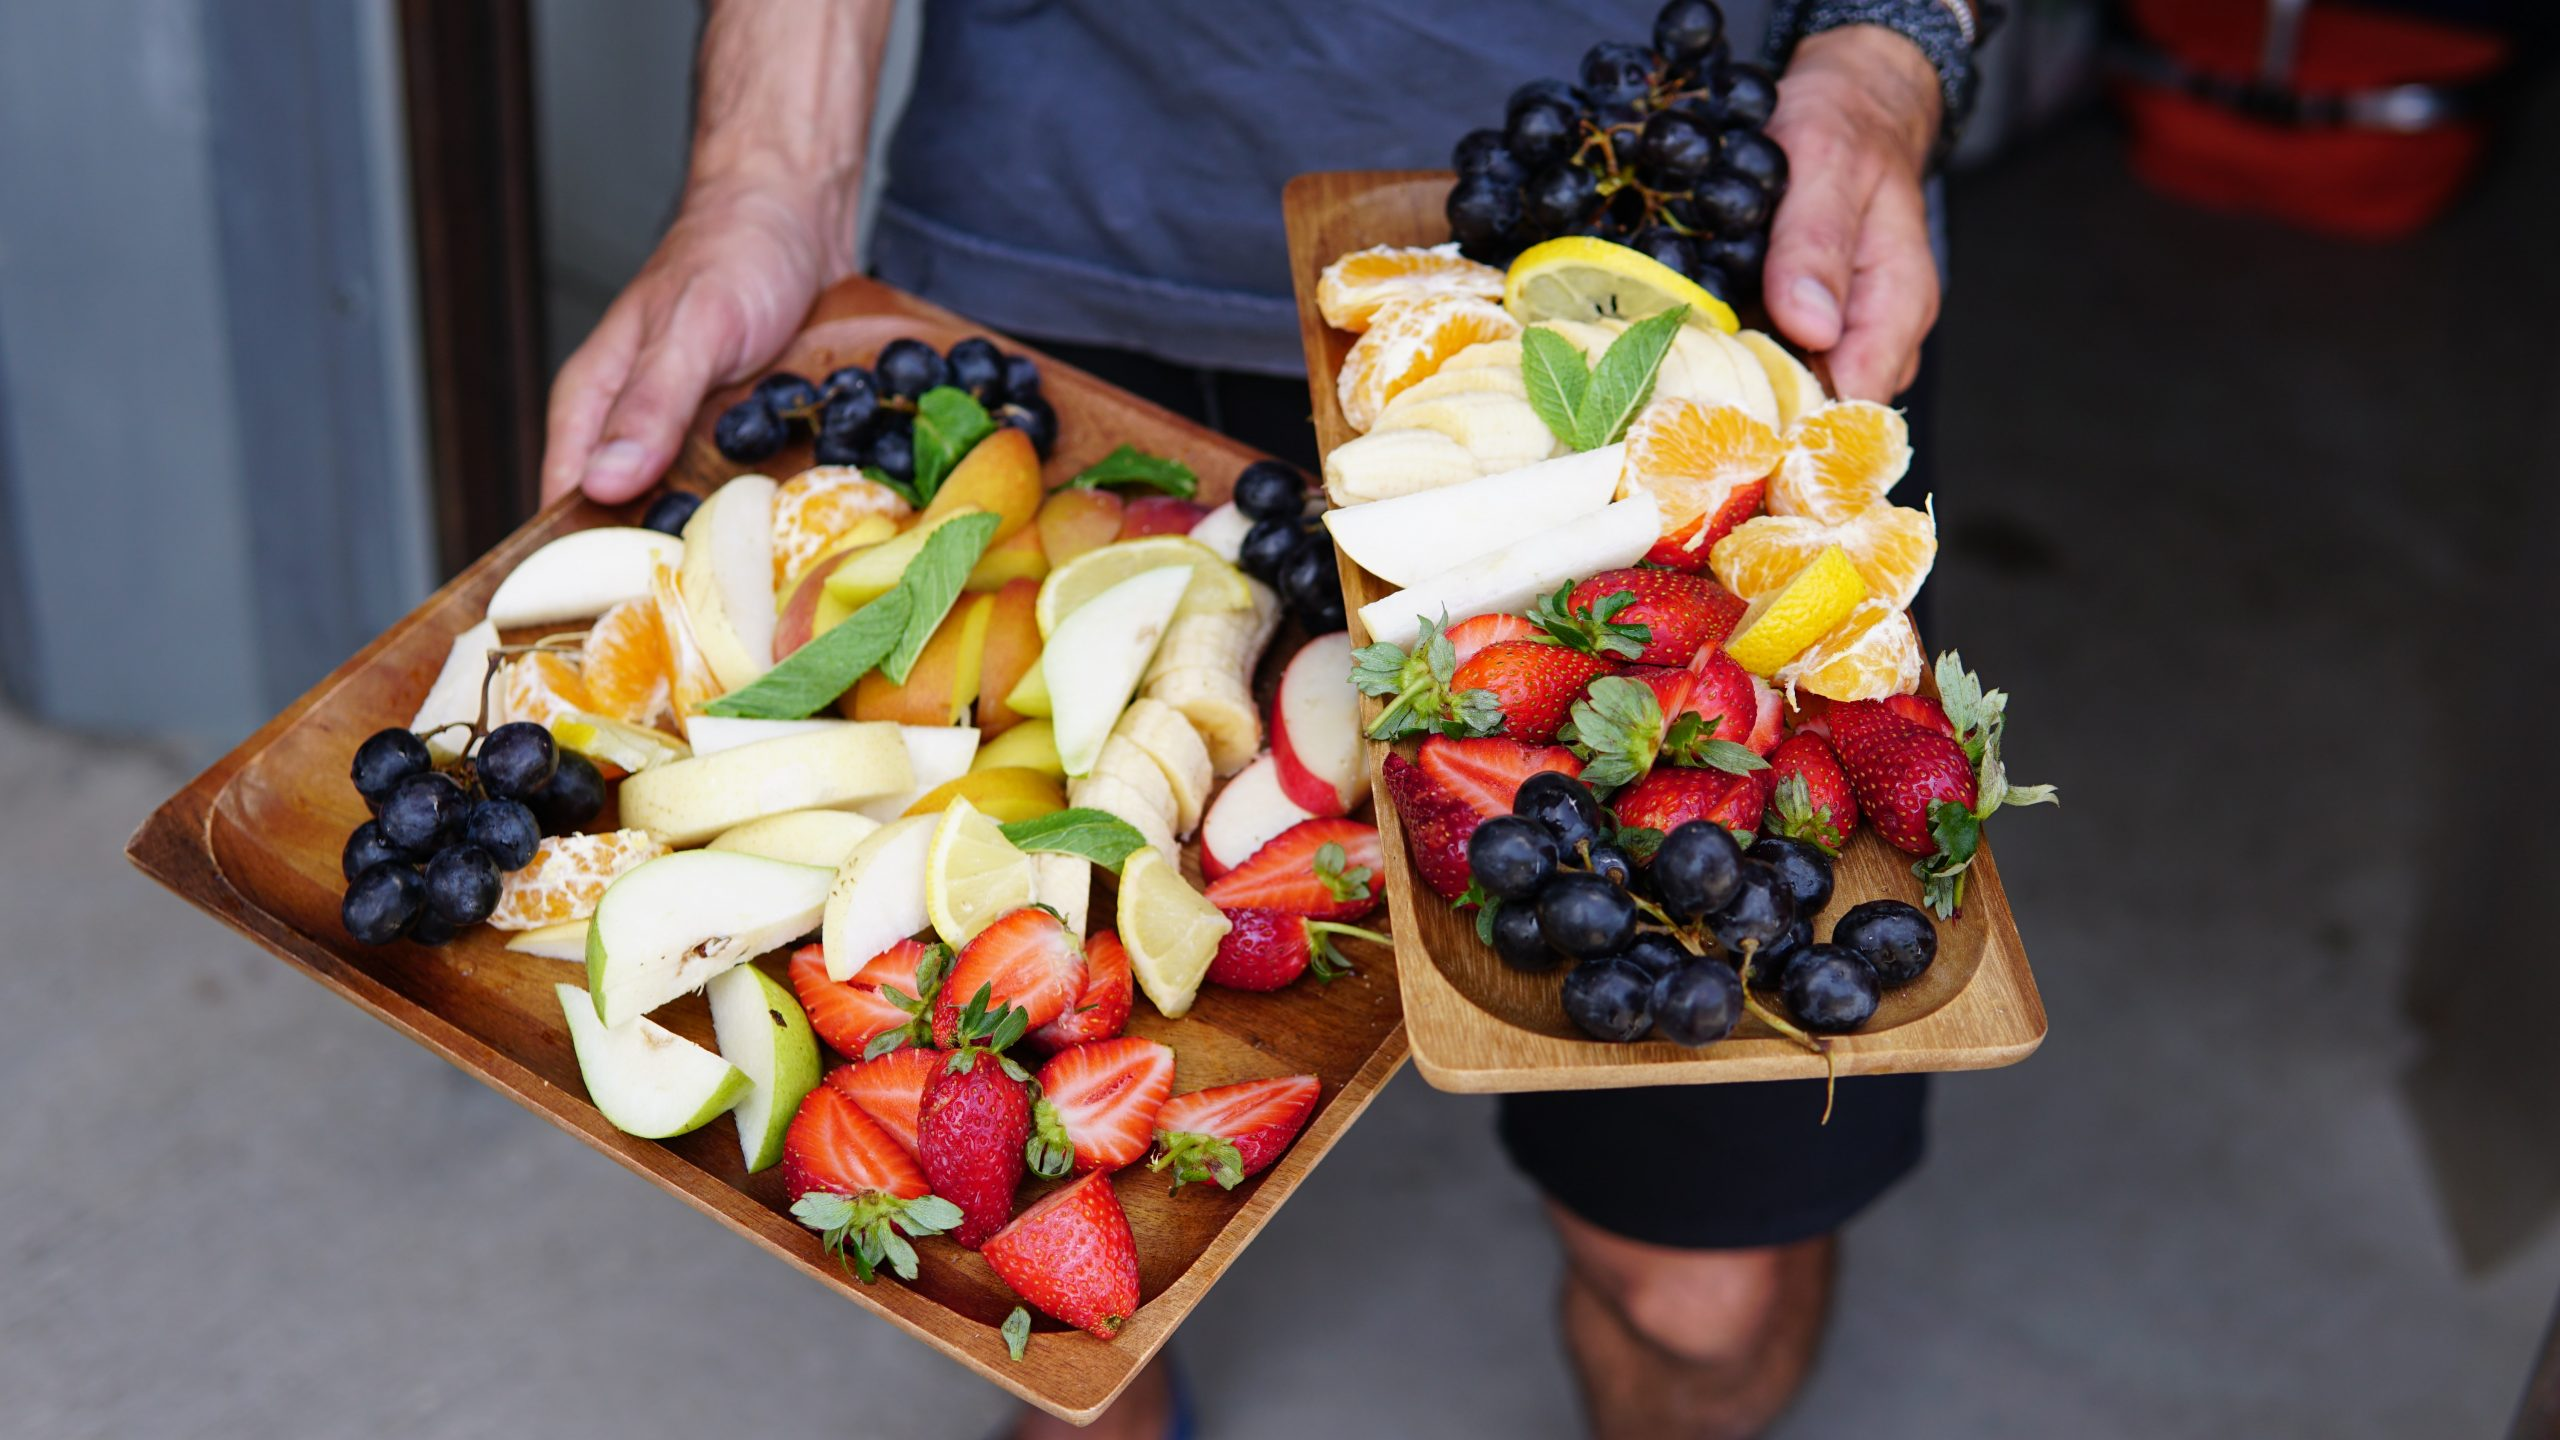 Platters of fresh fruit - pandemic food that ought to be pesticide-free